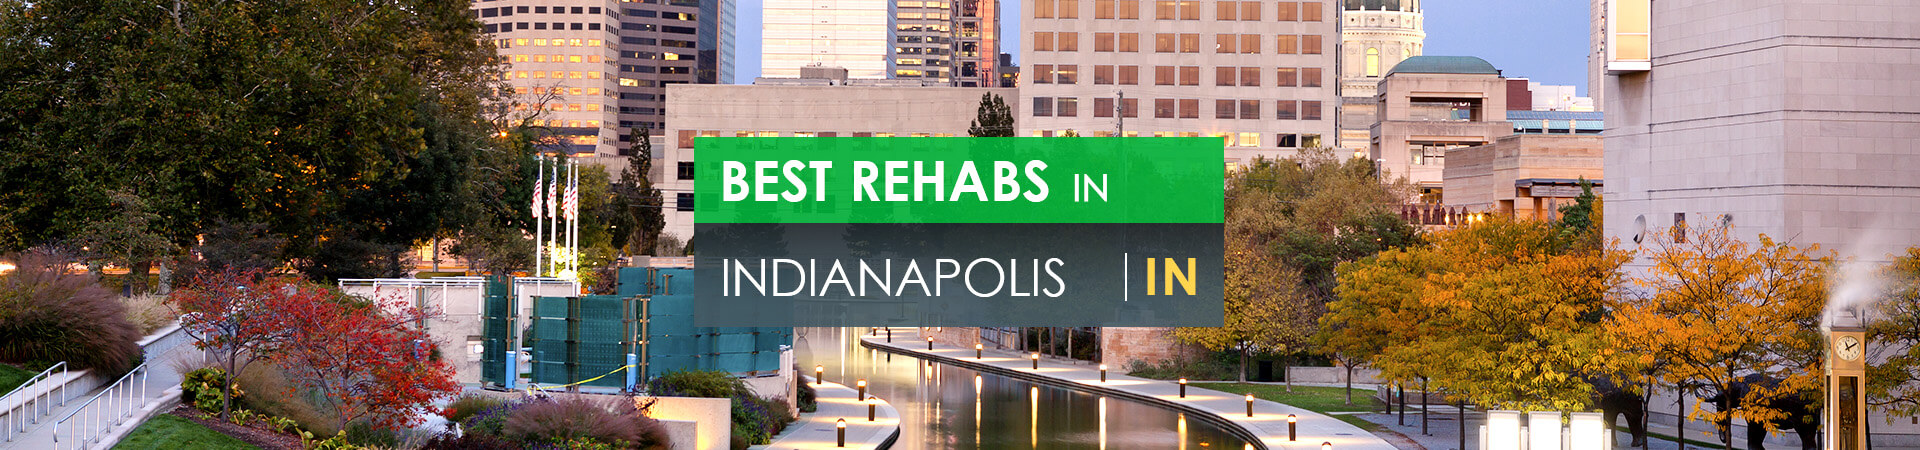 Best rehabs in Indianapolis, IN